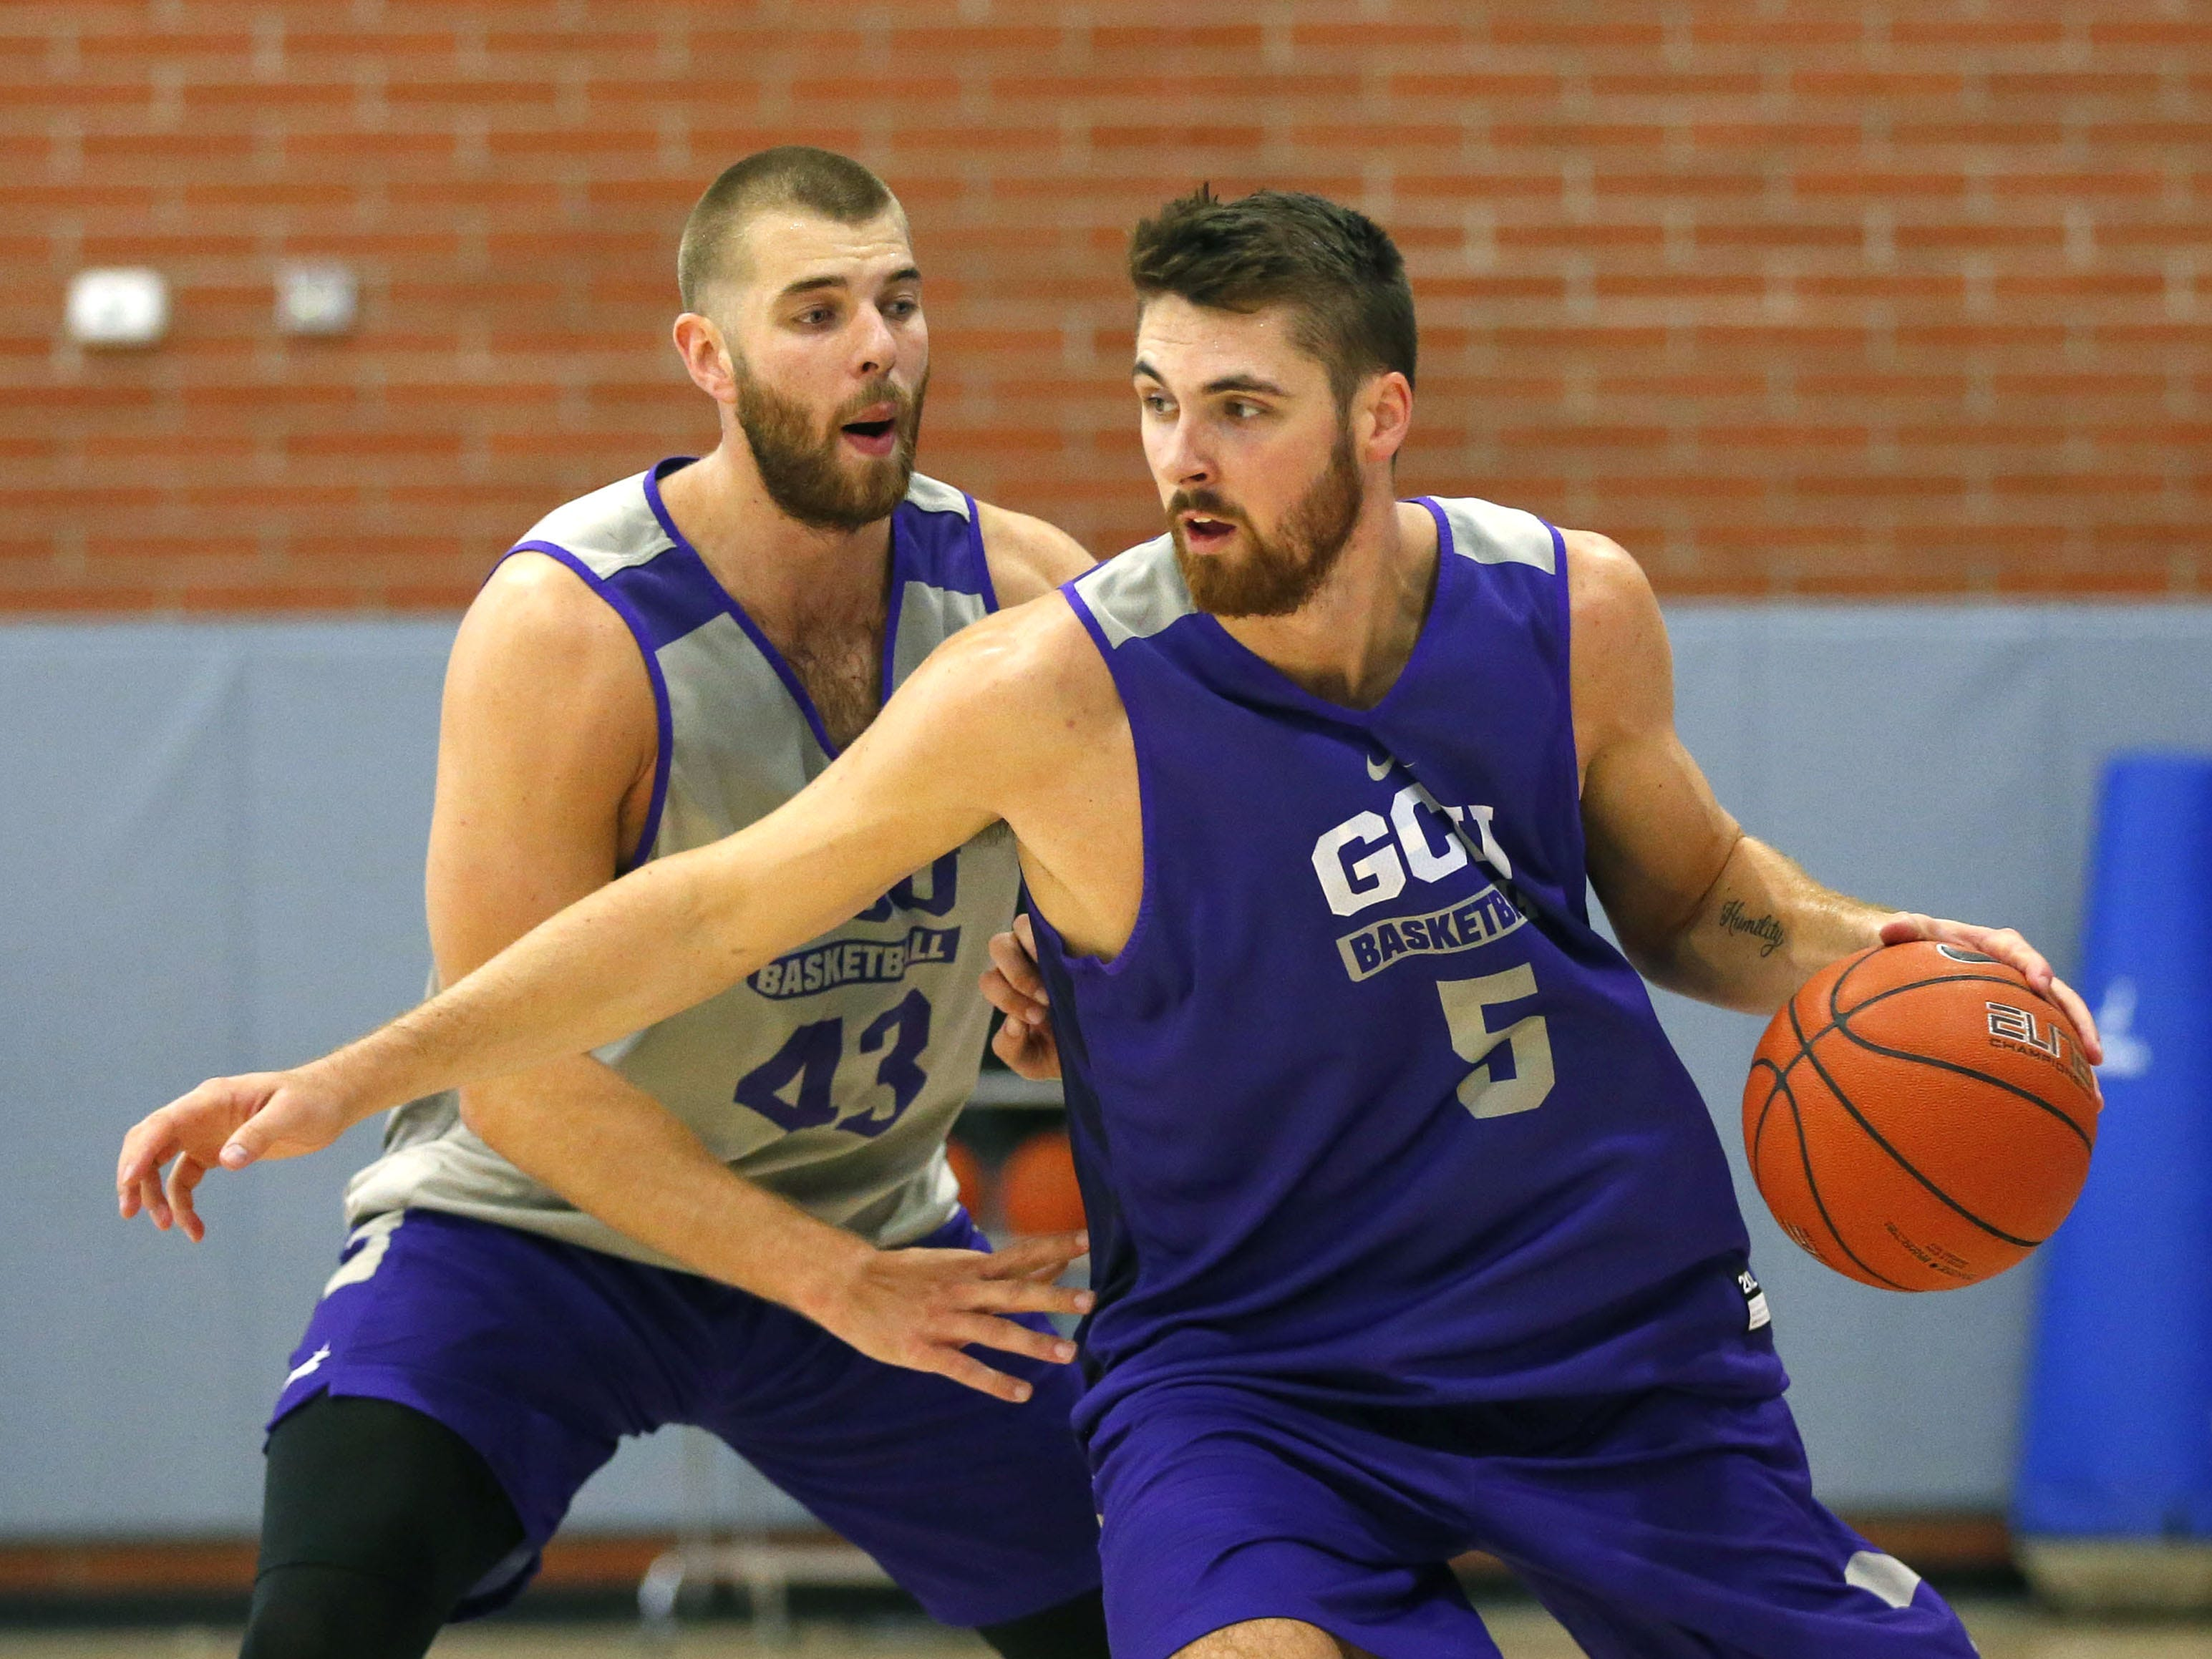 Grand Canyon University forward Michael Finke, (43) guards forward Matt Jackson, (5)  during practice in the gym in Phoenix on September 26,  2018.